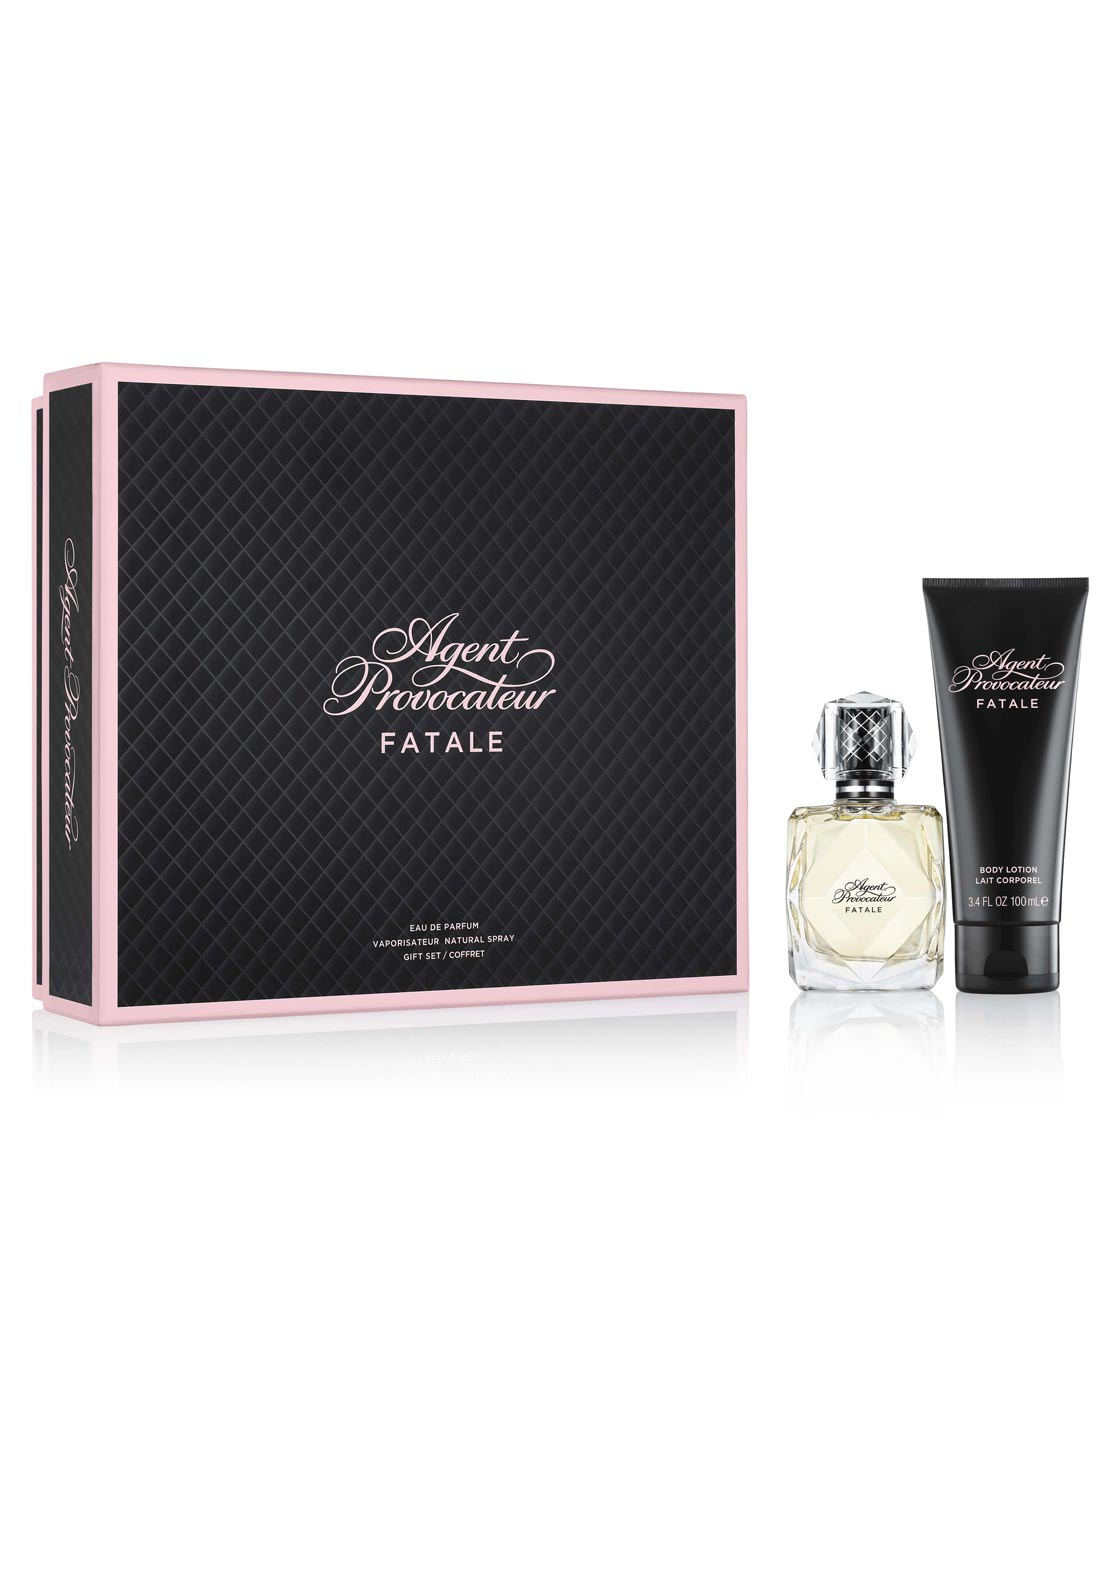 Agent Provocateur Fatale Eau De Parfum Gift Set for Women, 50ml